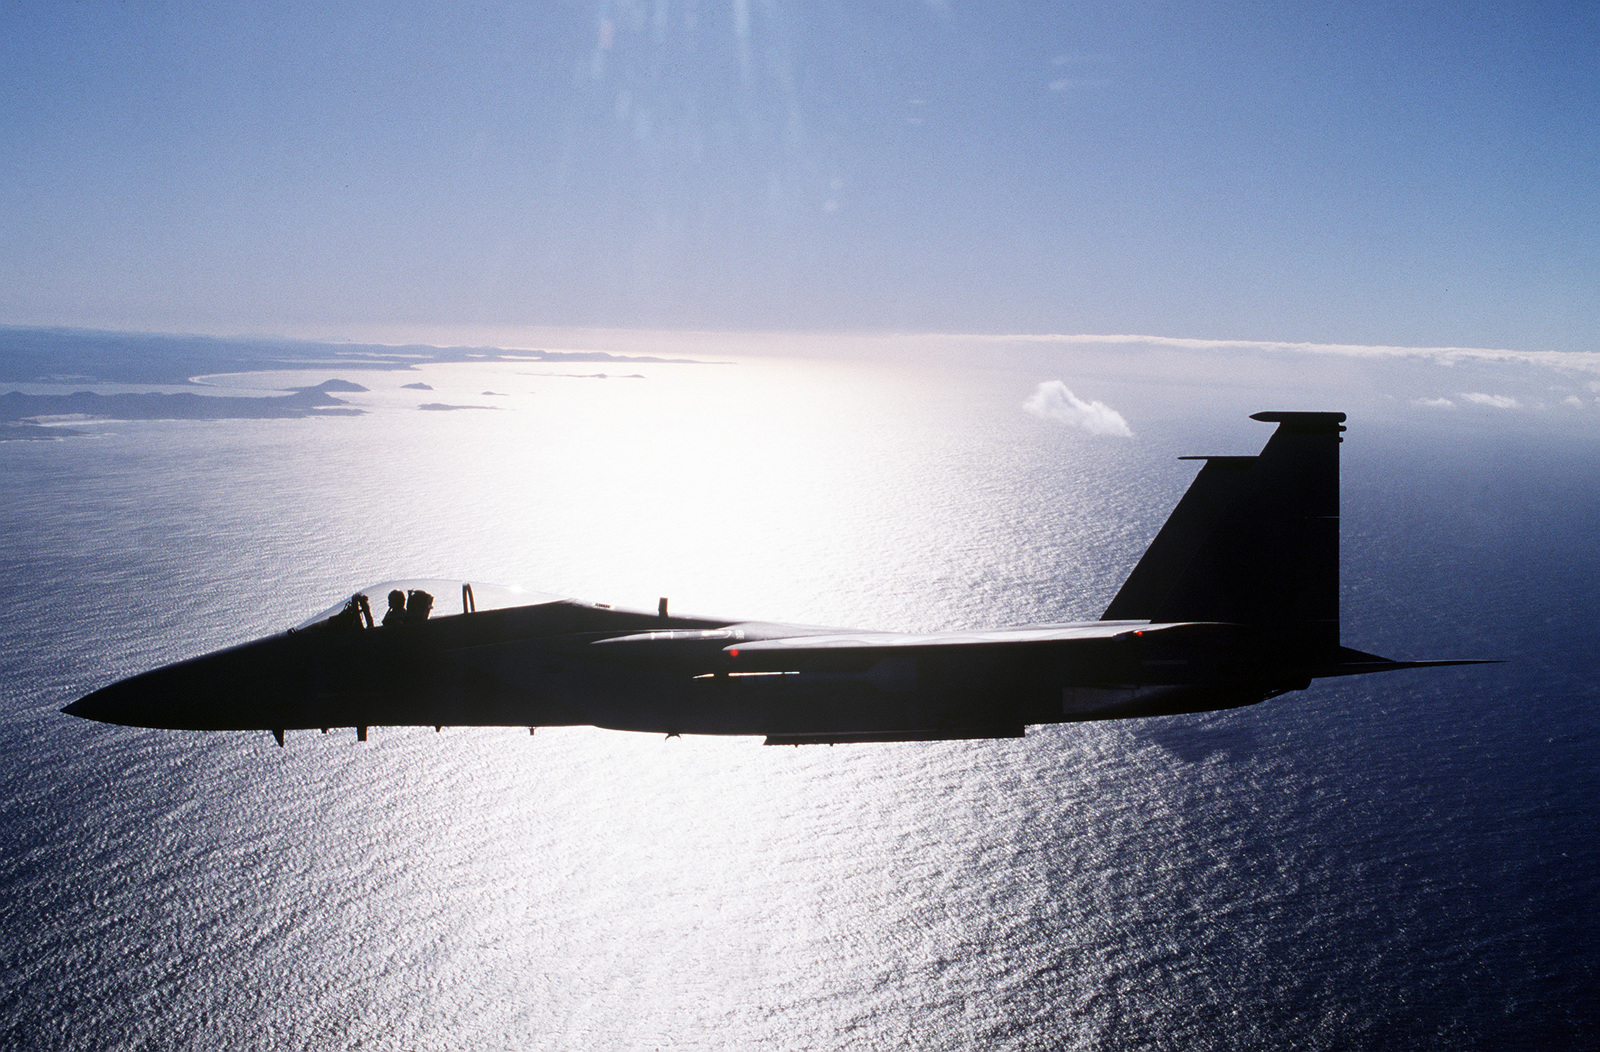 An aerial left side view of an F-15C silhouetted by the sun's reflection on the Indian Ocean. The aircraft, from the 44th Fighter Squadron, Kadena Air Base, Japan, patrols the air space around Williamtown during an air to air exercise between the United States Air Force and the Royal Australian Air Force